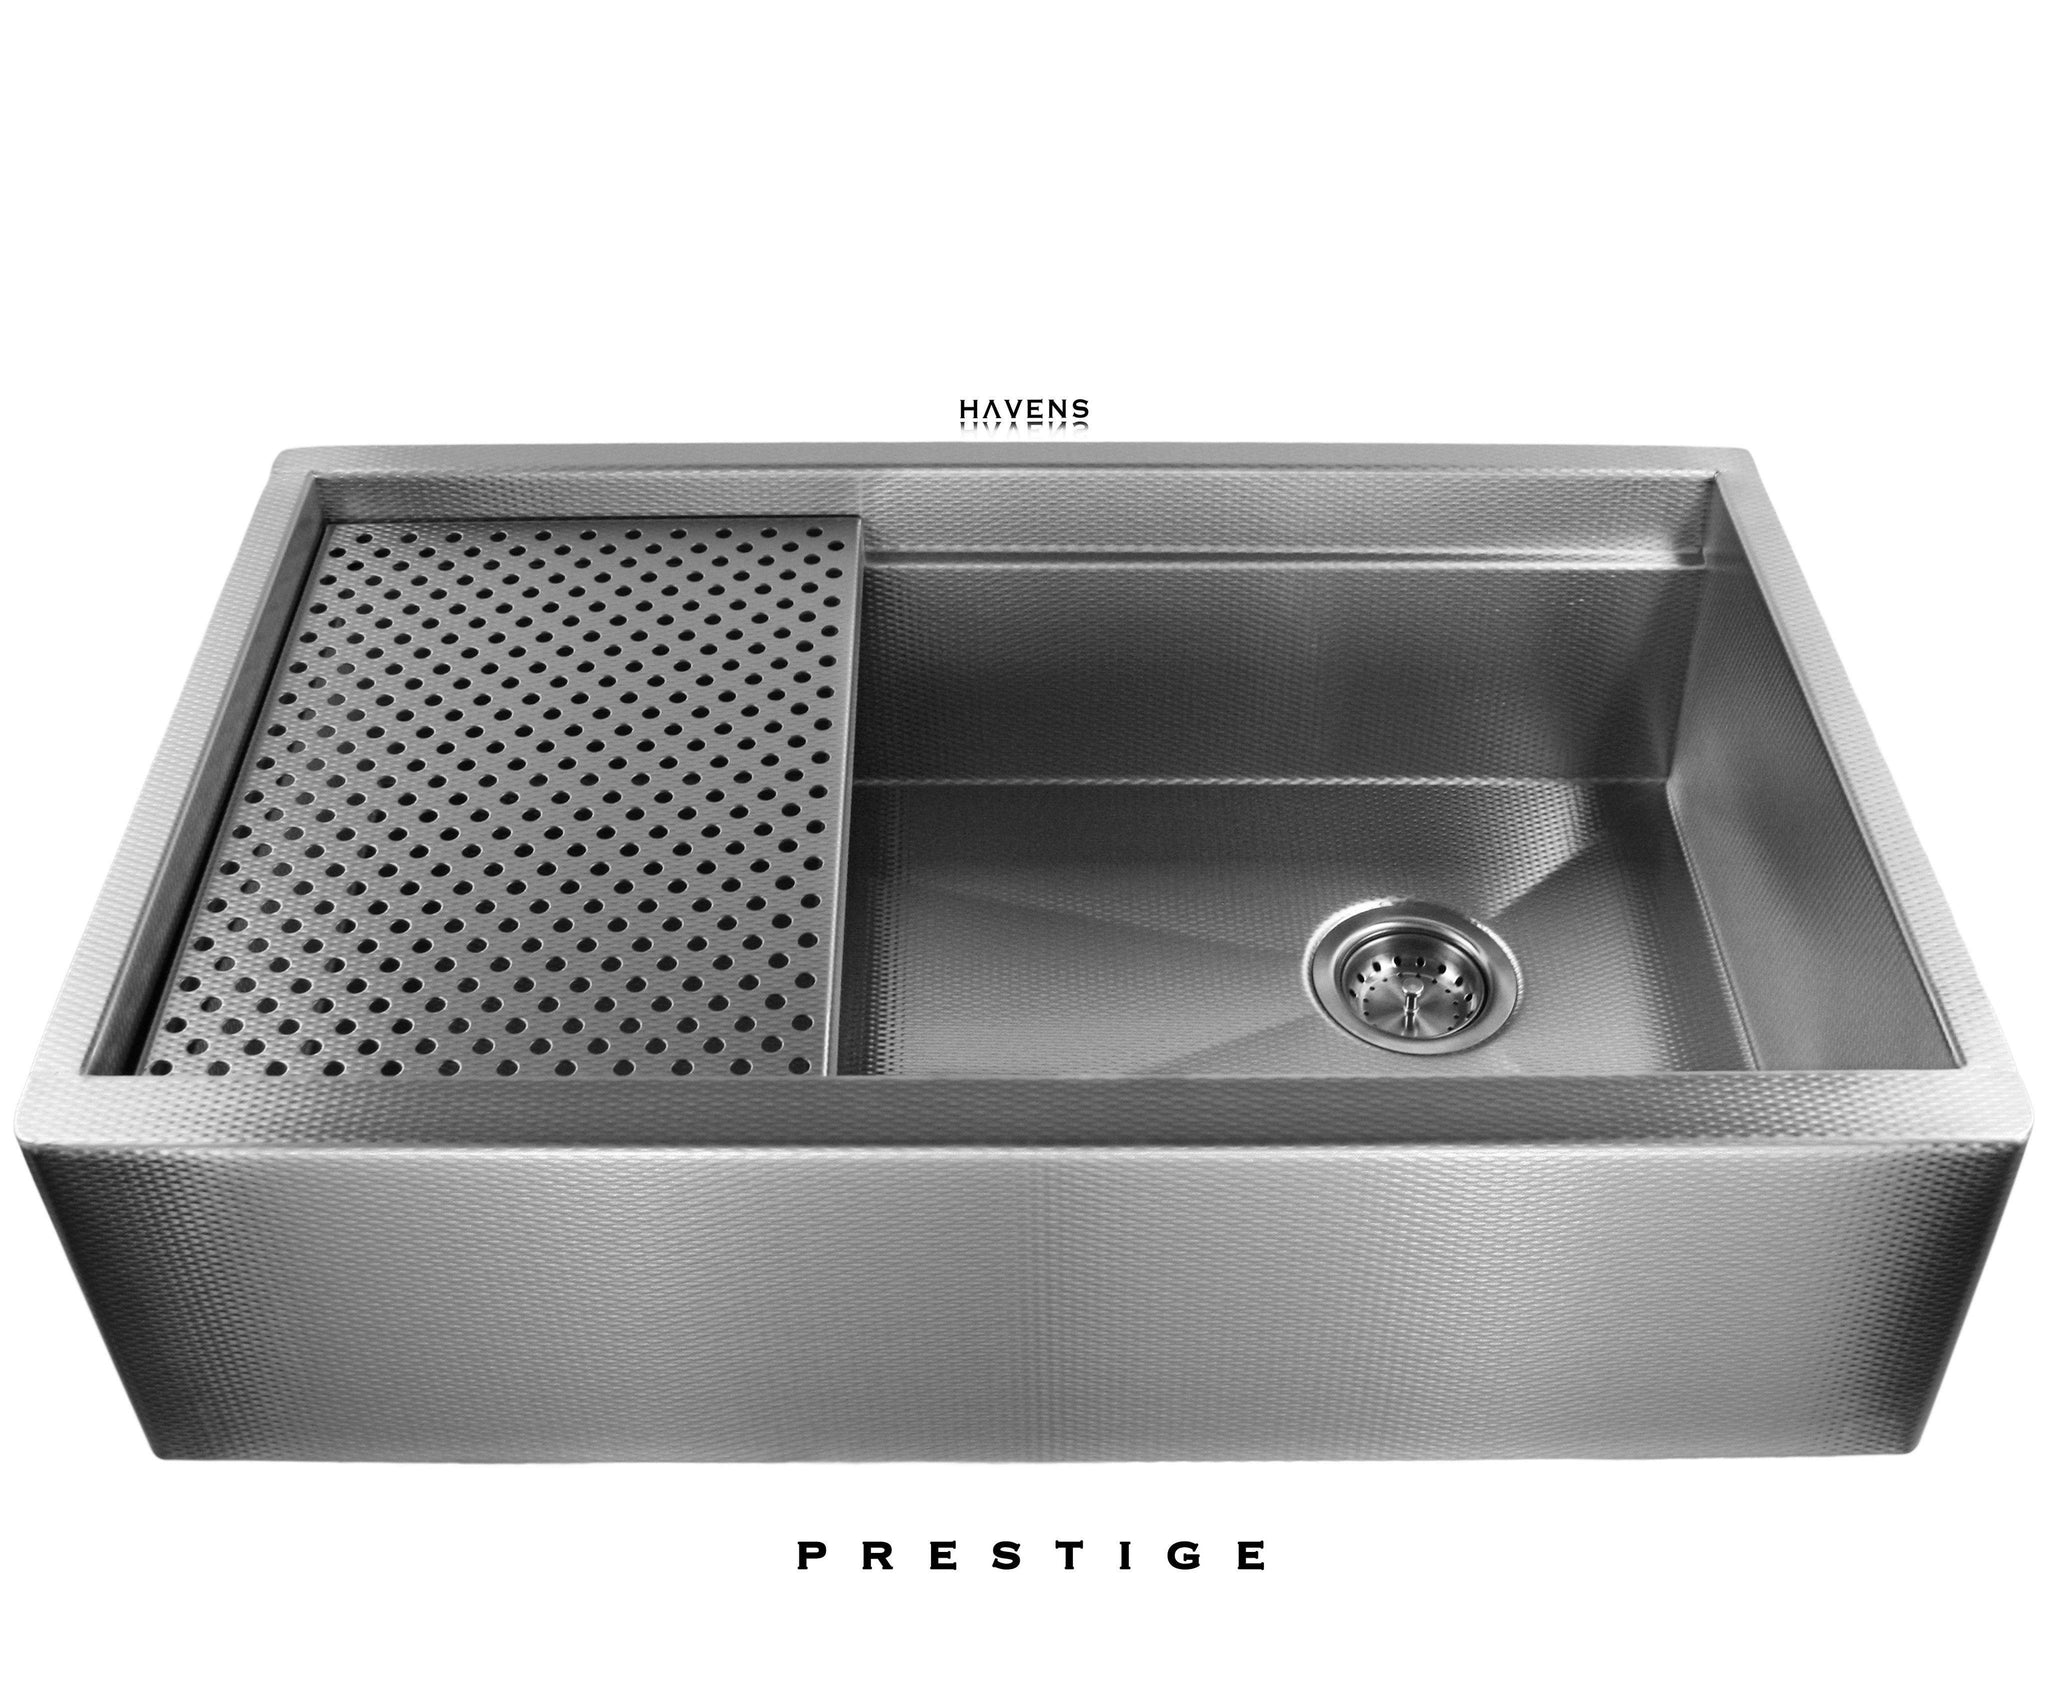 of inspirations kjuvvl awesome clark stainless h idea kitchen sinks sink steel elegant